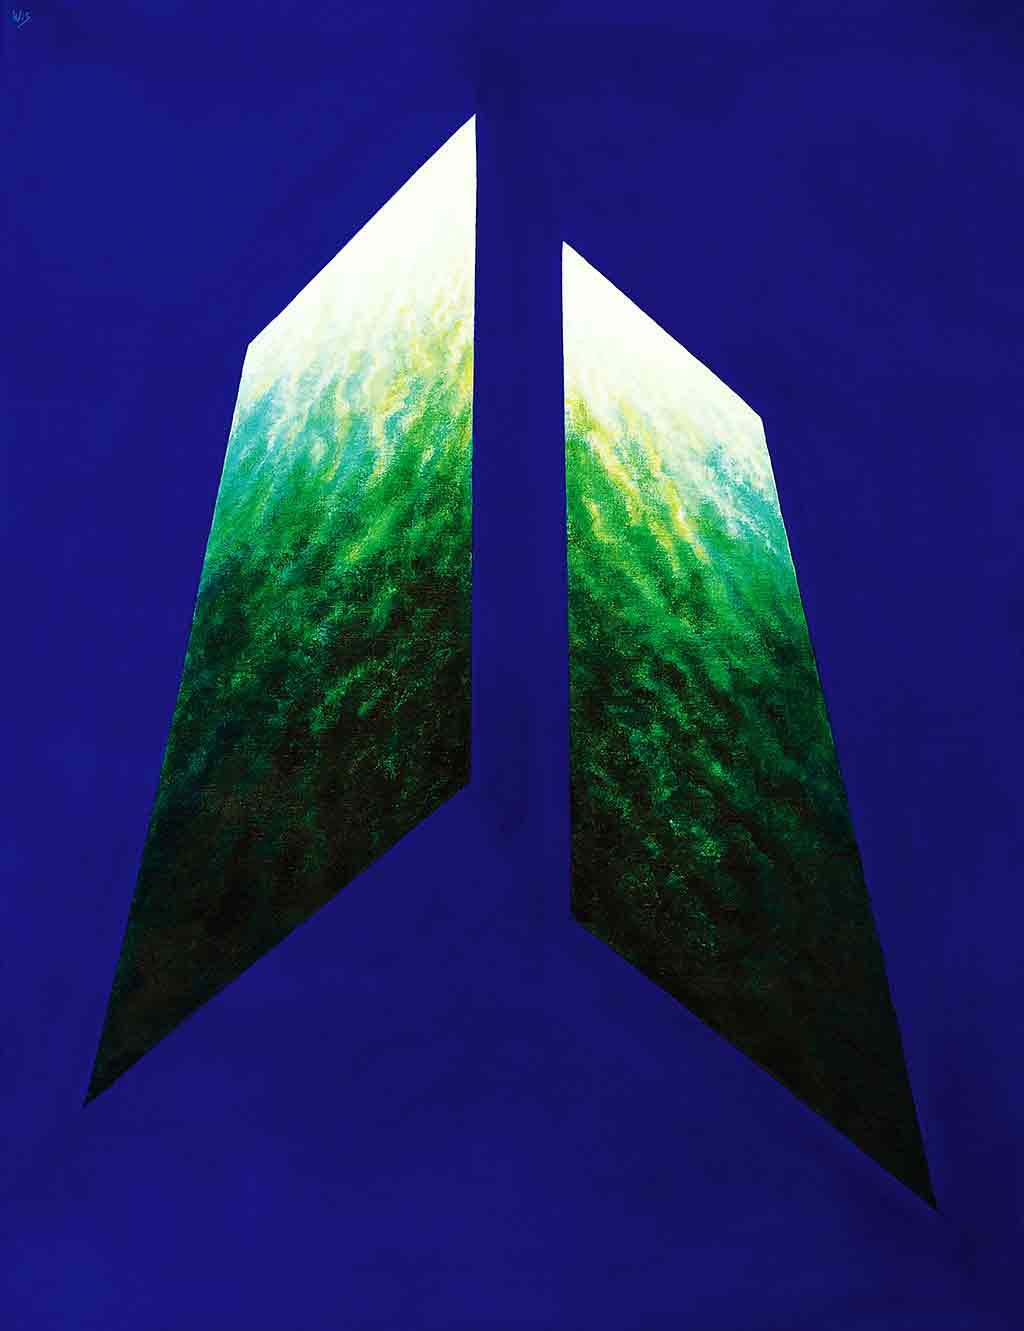 Blue-green Abstract, 1995, Original Acrylic Painting and Art Canvas Print by Wieslaw Sadurski